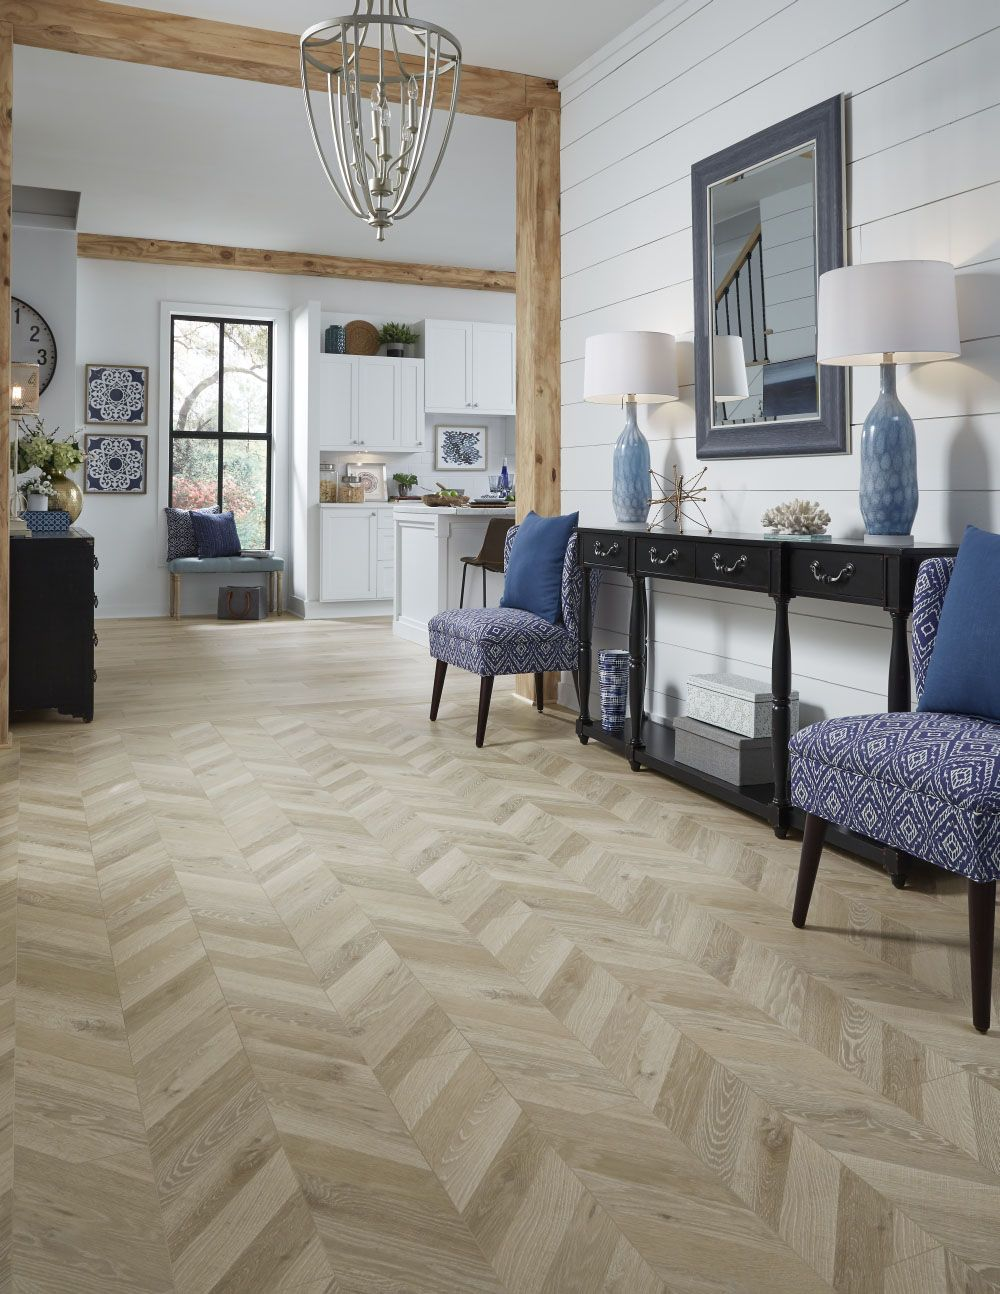 Our New Restoration Collection Floors Deliver The Beauty